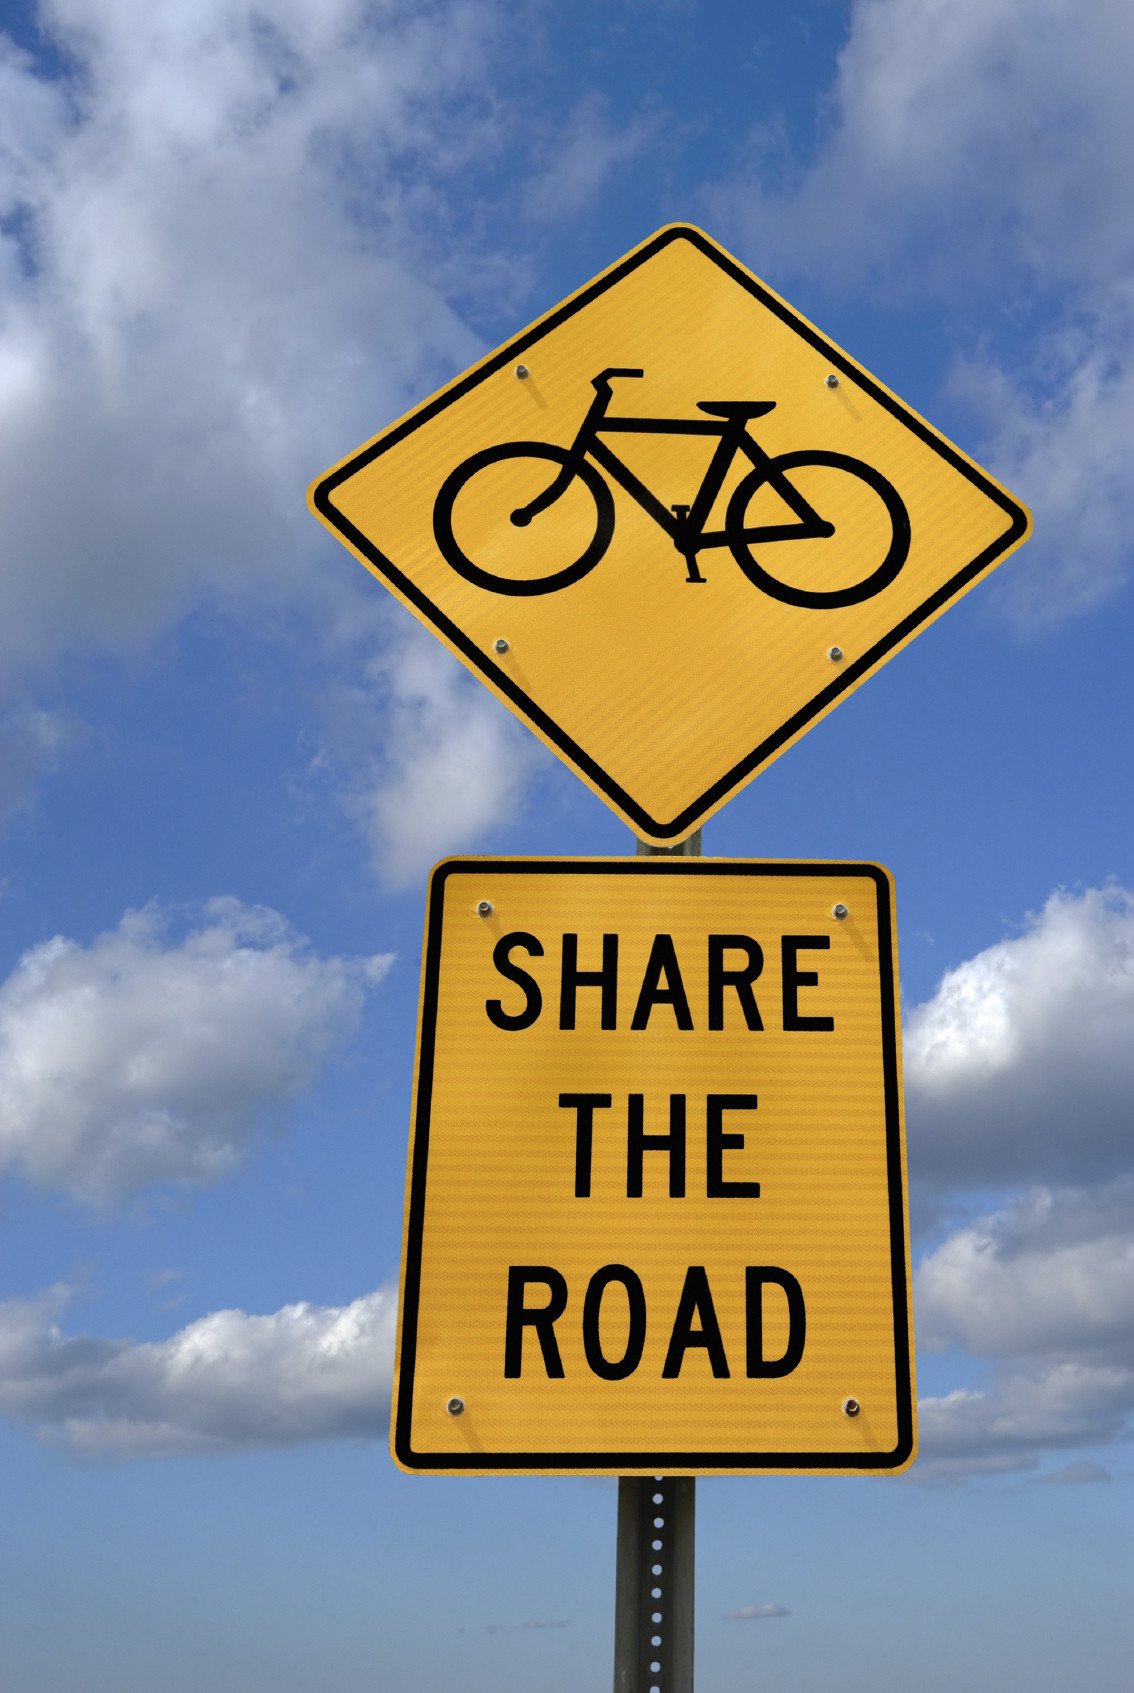 biker-safety-road-bicycle